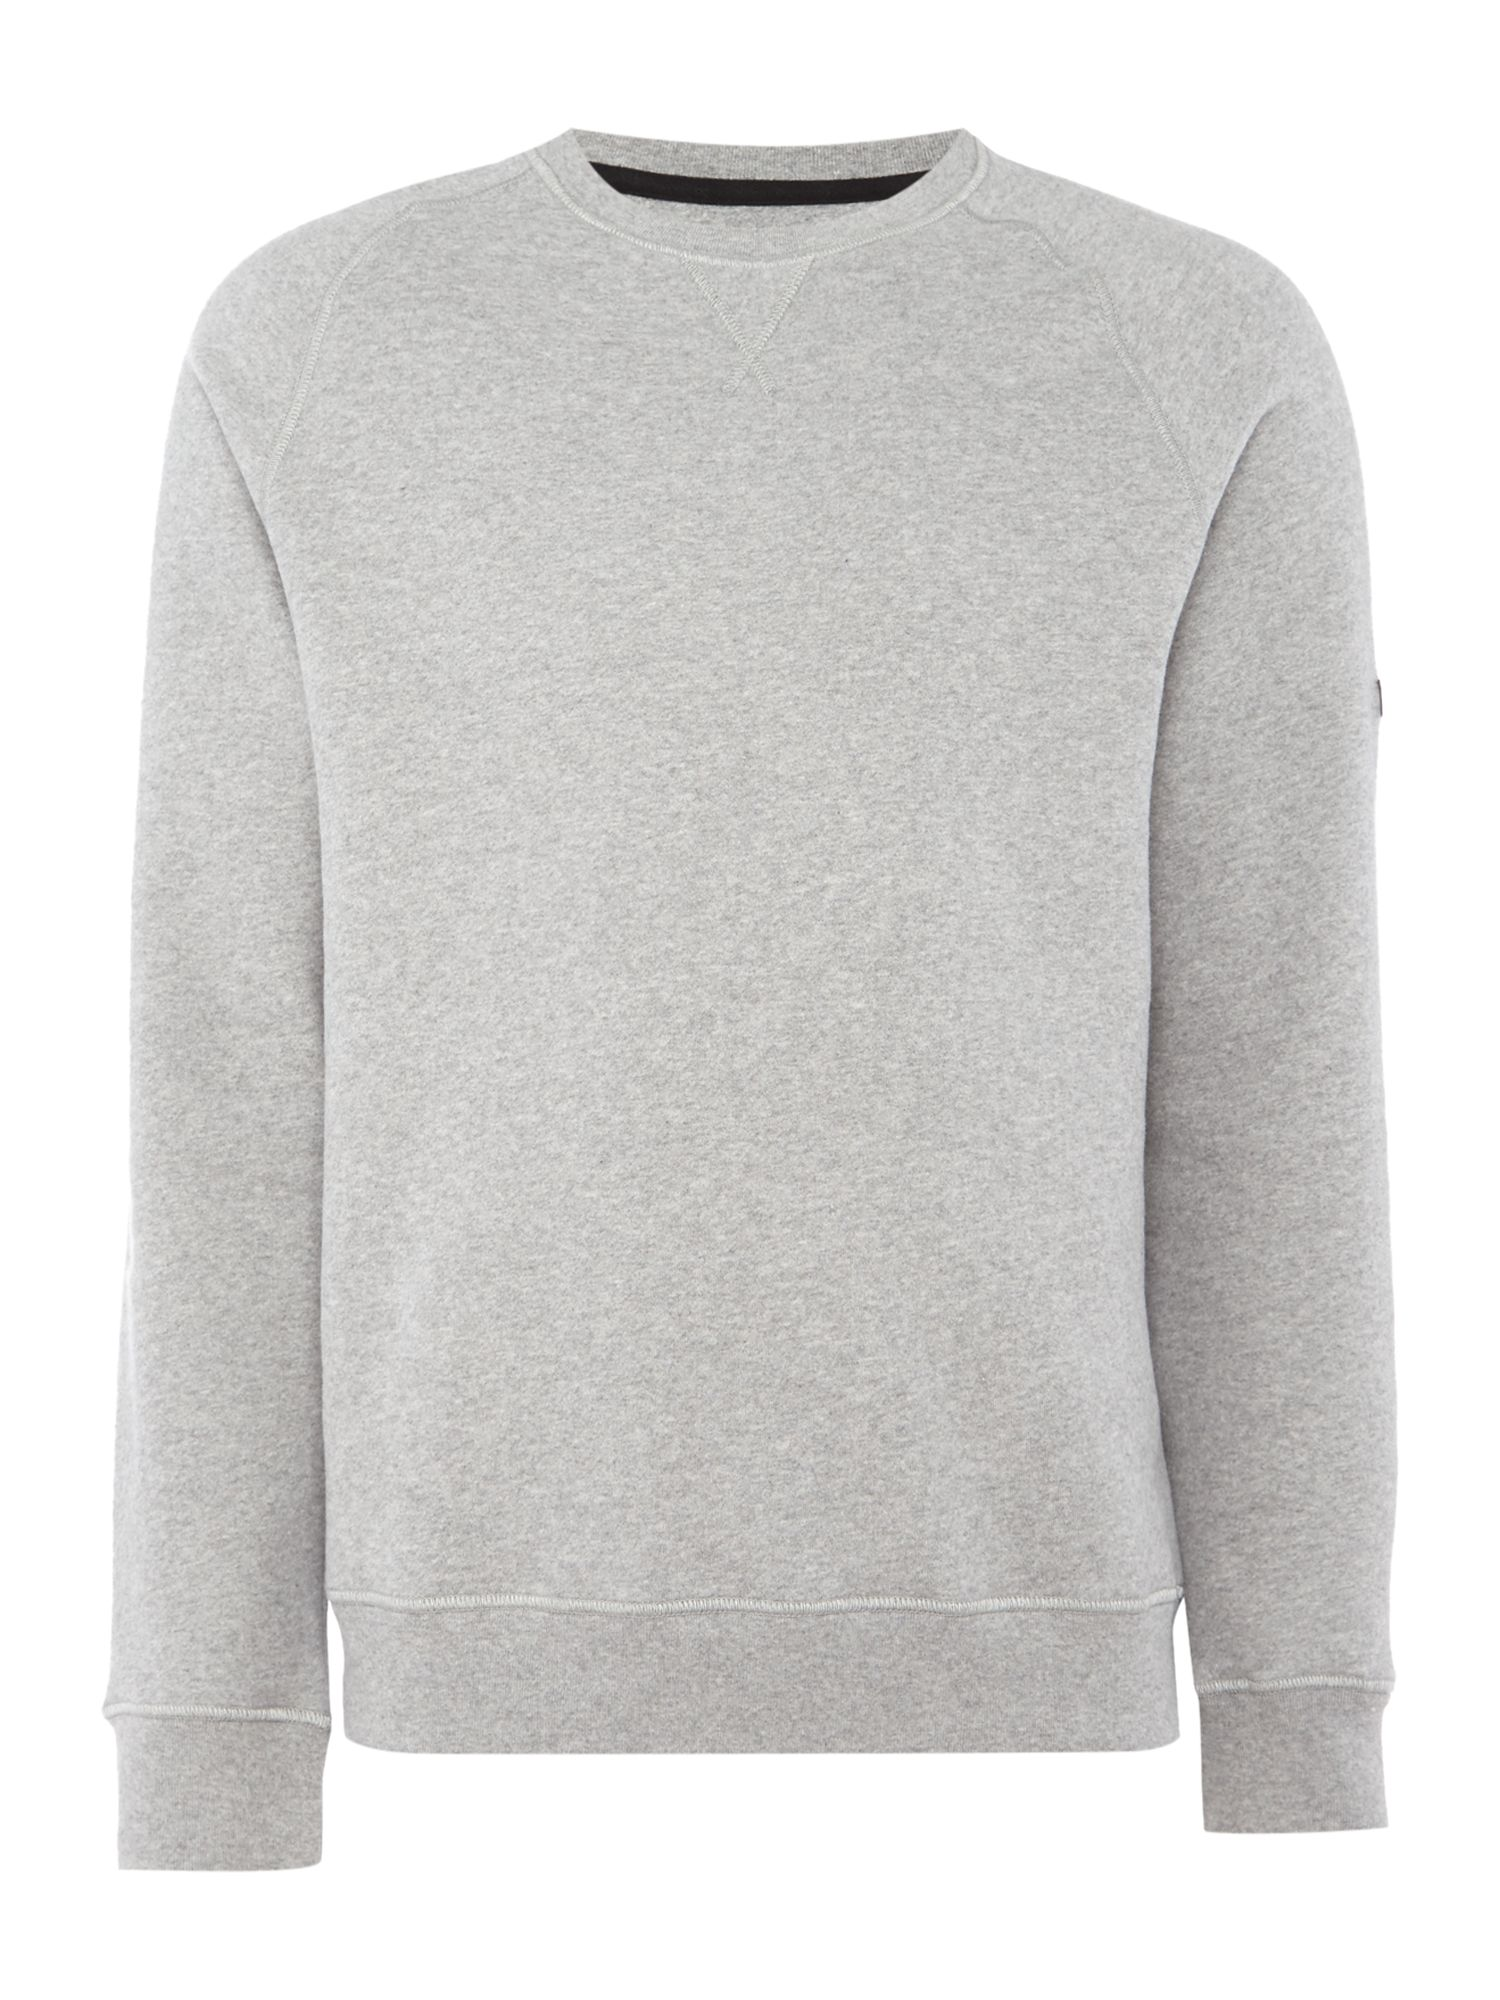 Men's Barbour Crew neck small logo sweatshirt, Mid Grey Marl